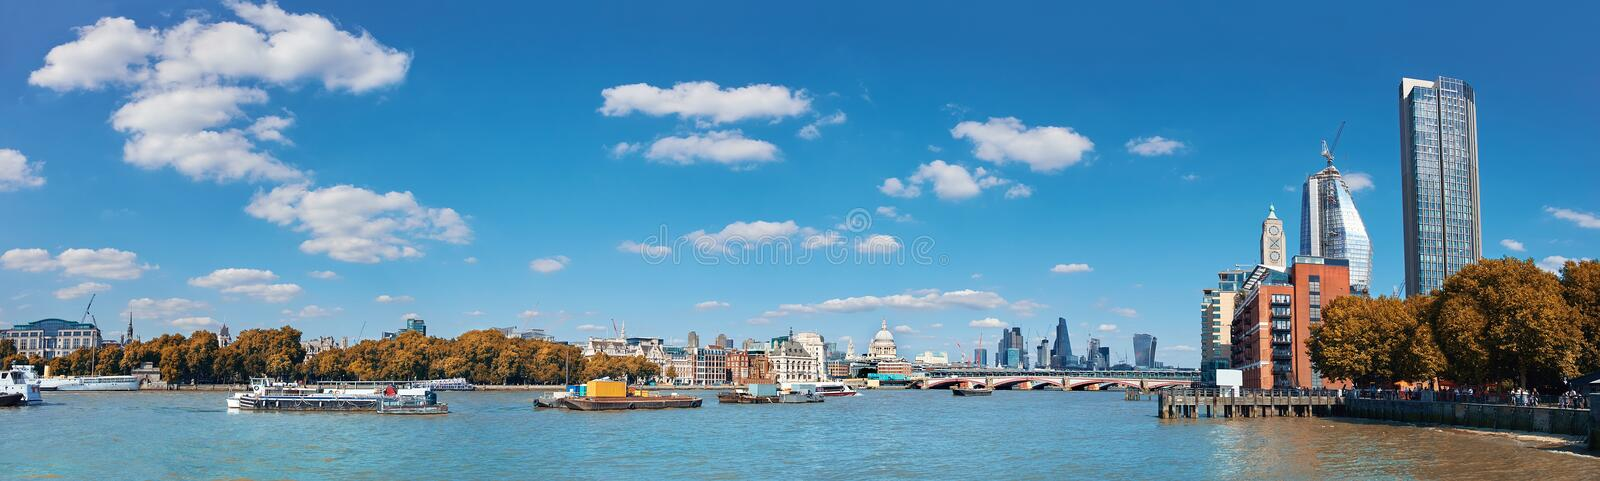 London panoramautsikt över Thames River från den Waterloo bron royaltyfri bild